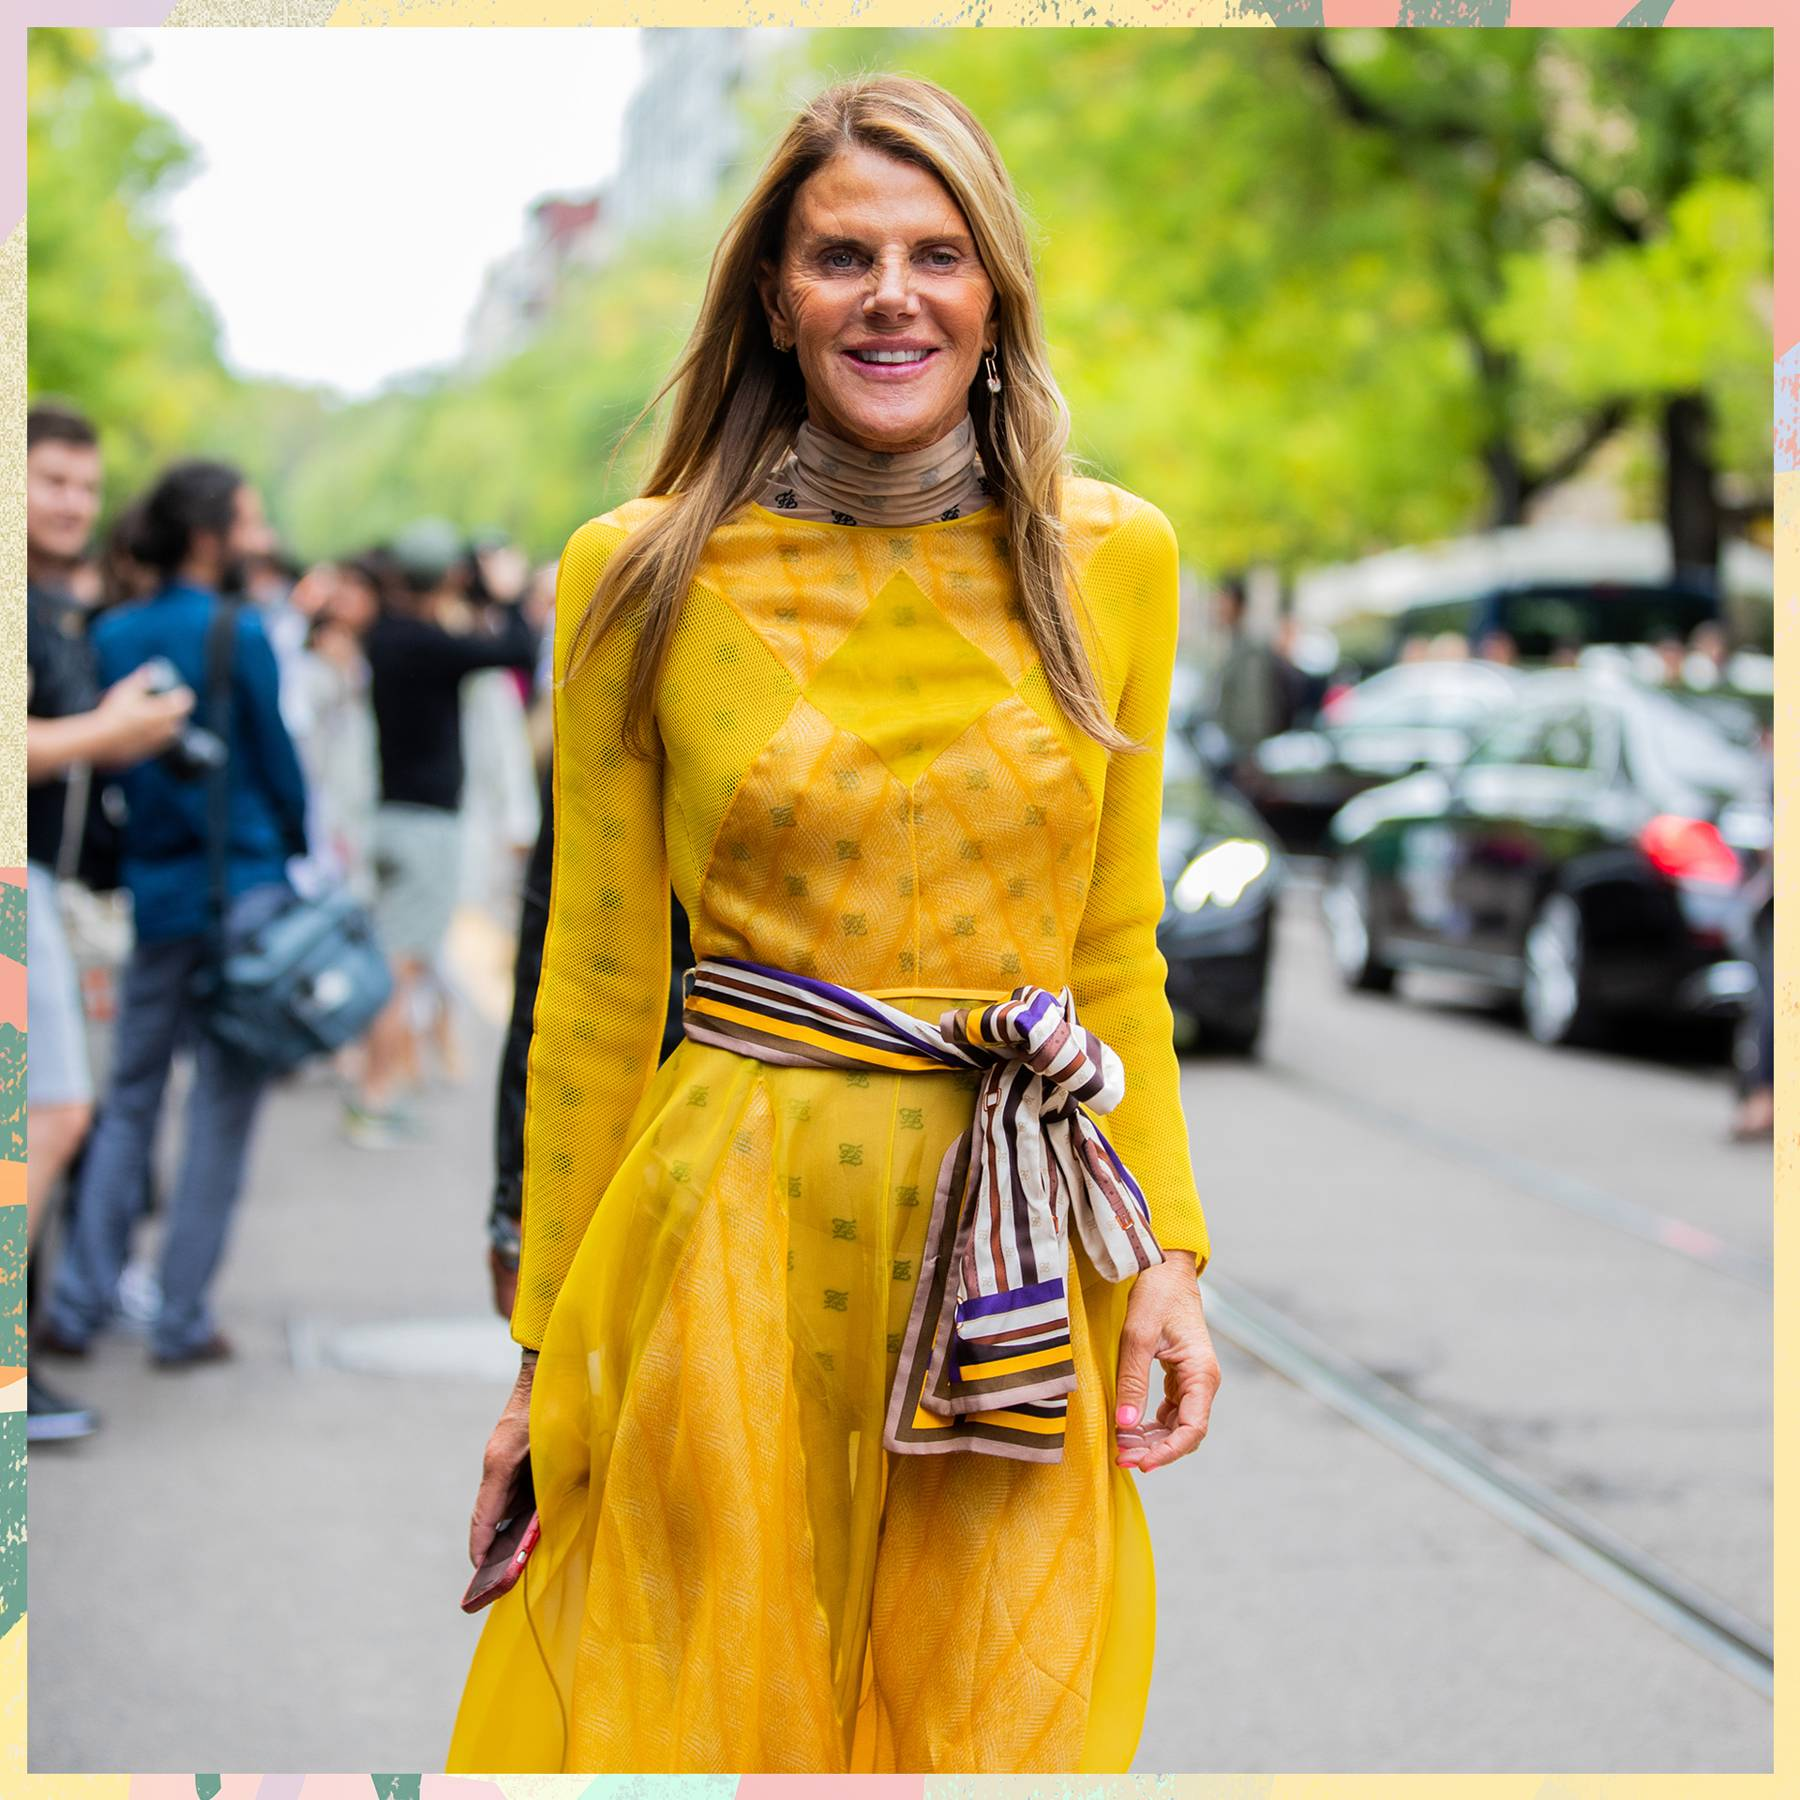 OG street style star Anna dello Russo reveals the 5 fashion stars to follow on Instagram RN